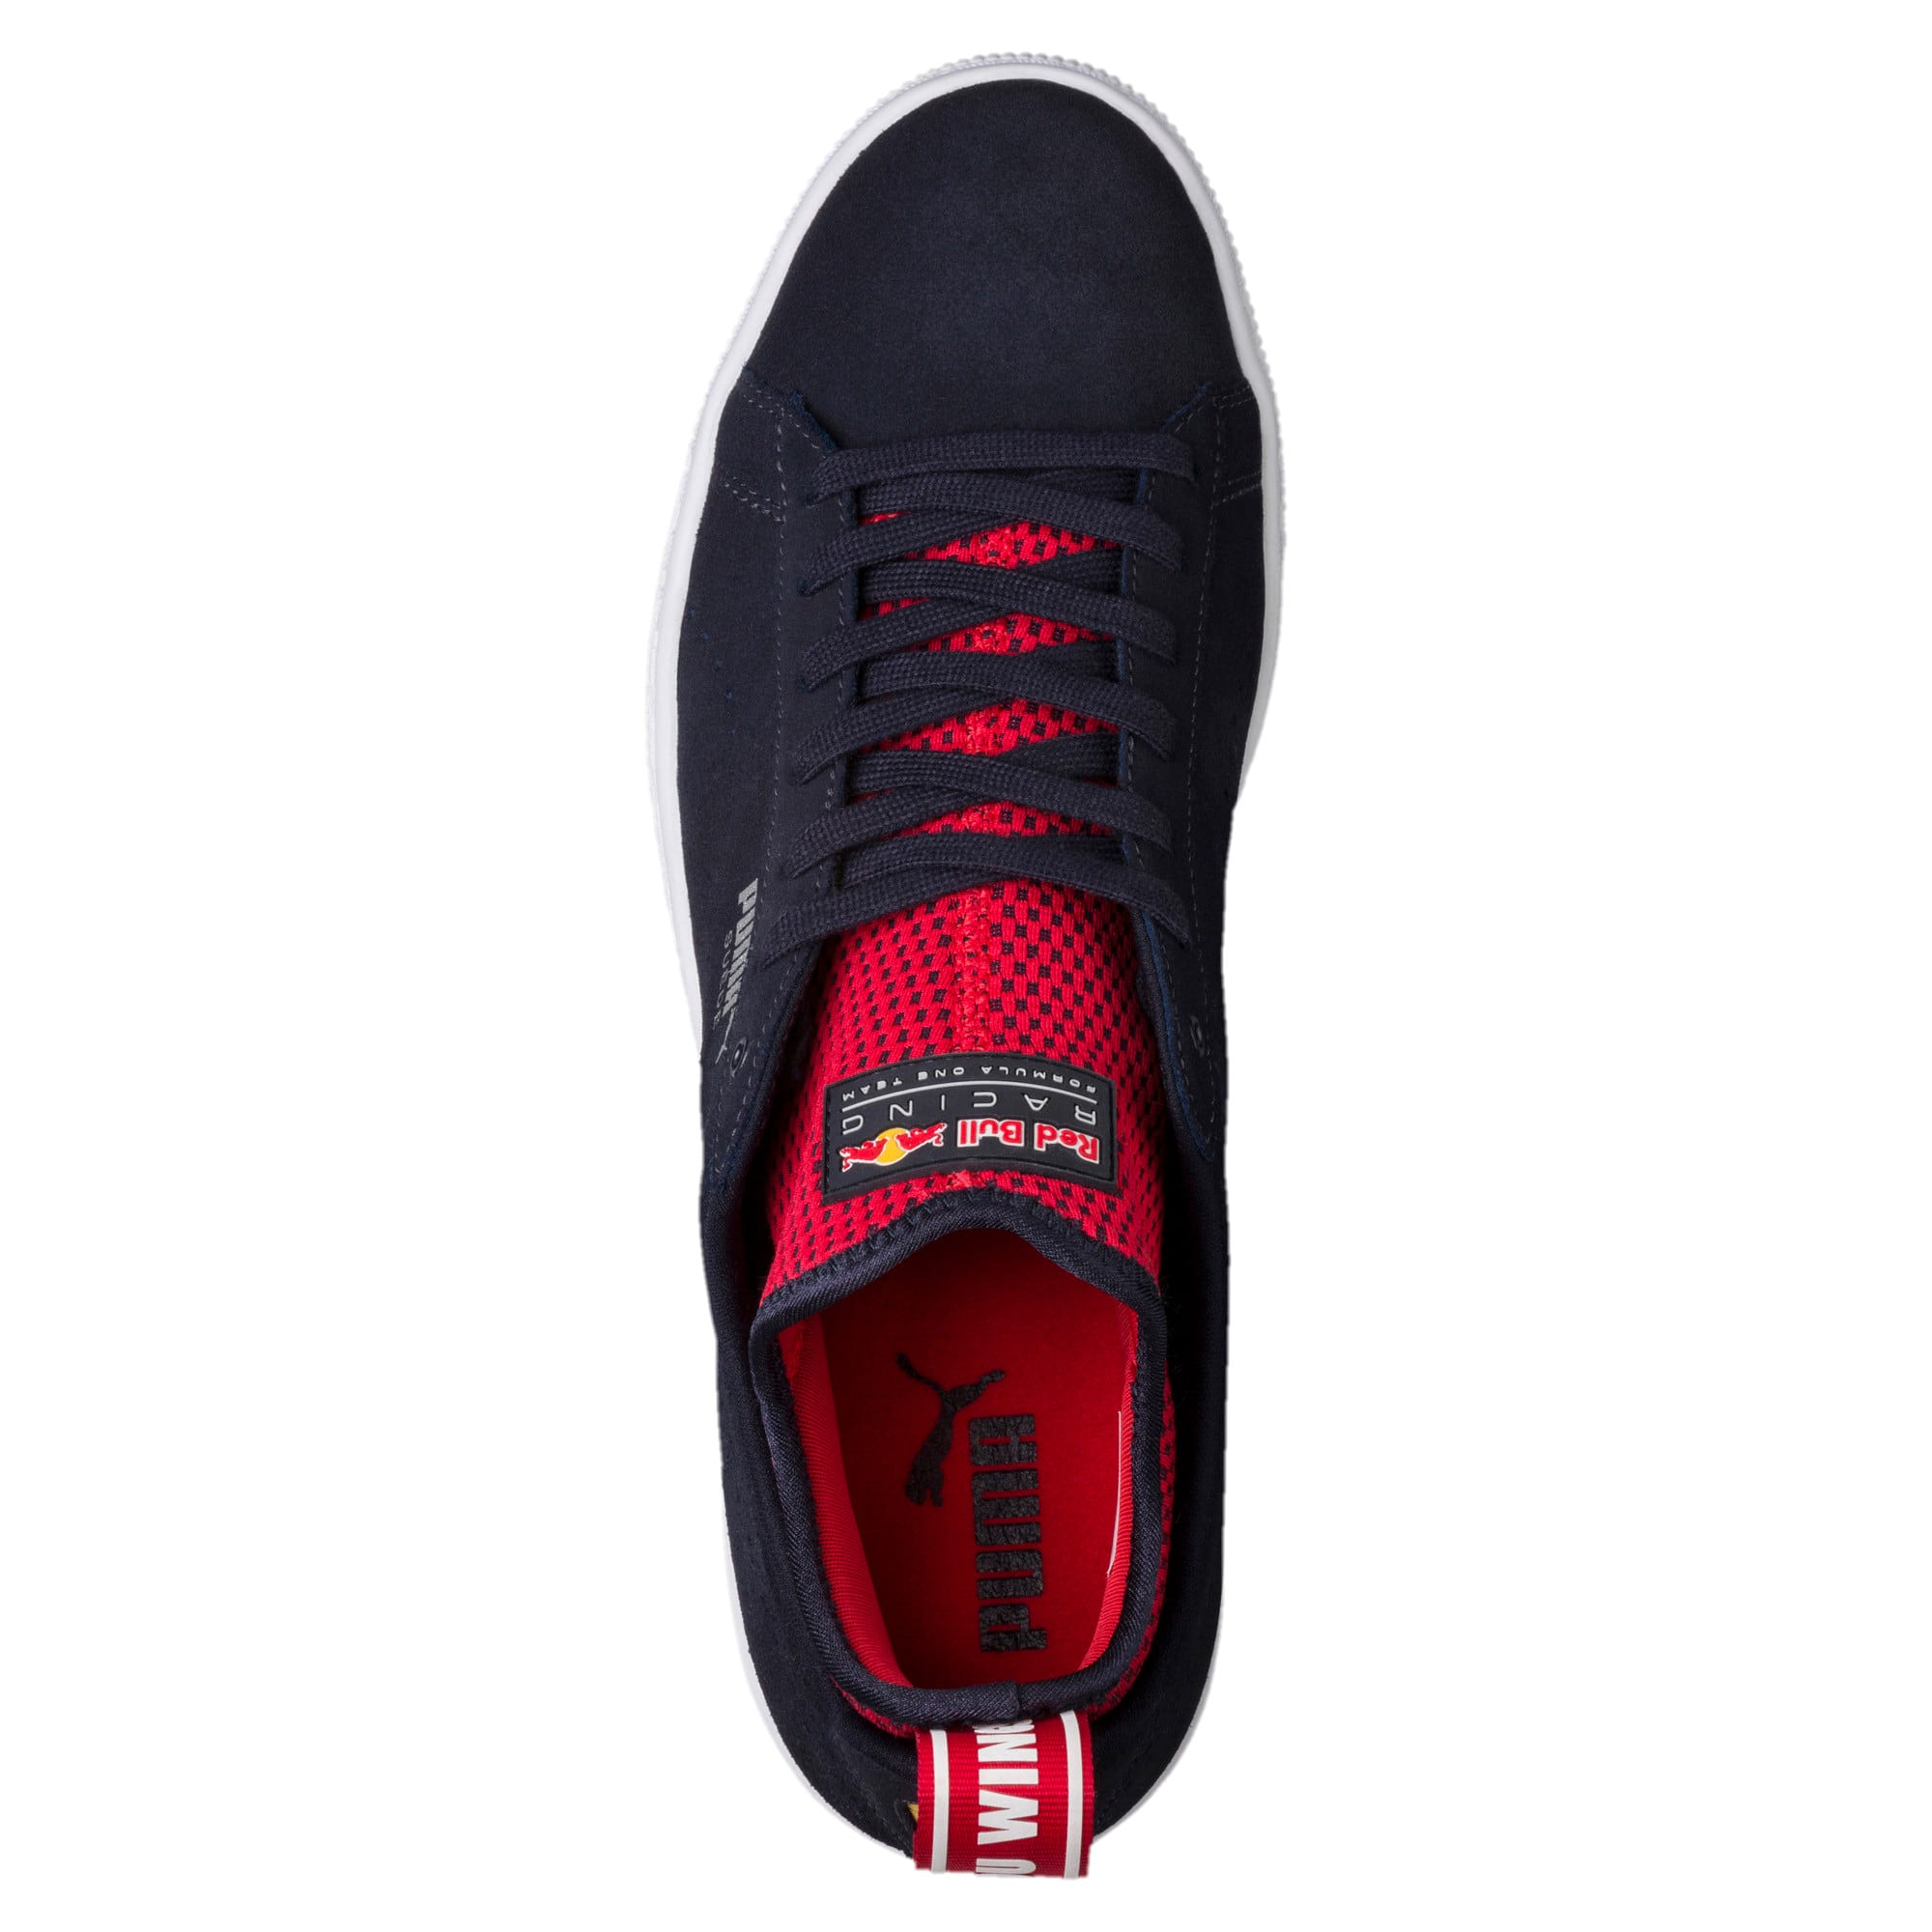 Thumbnail 5 of Red Bull Racing Suede Trainers, NIGHT SKY-Freesia-Chinese Rd, medium-IND